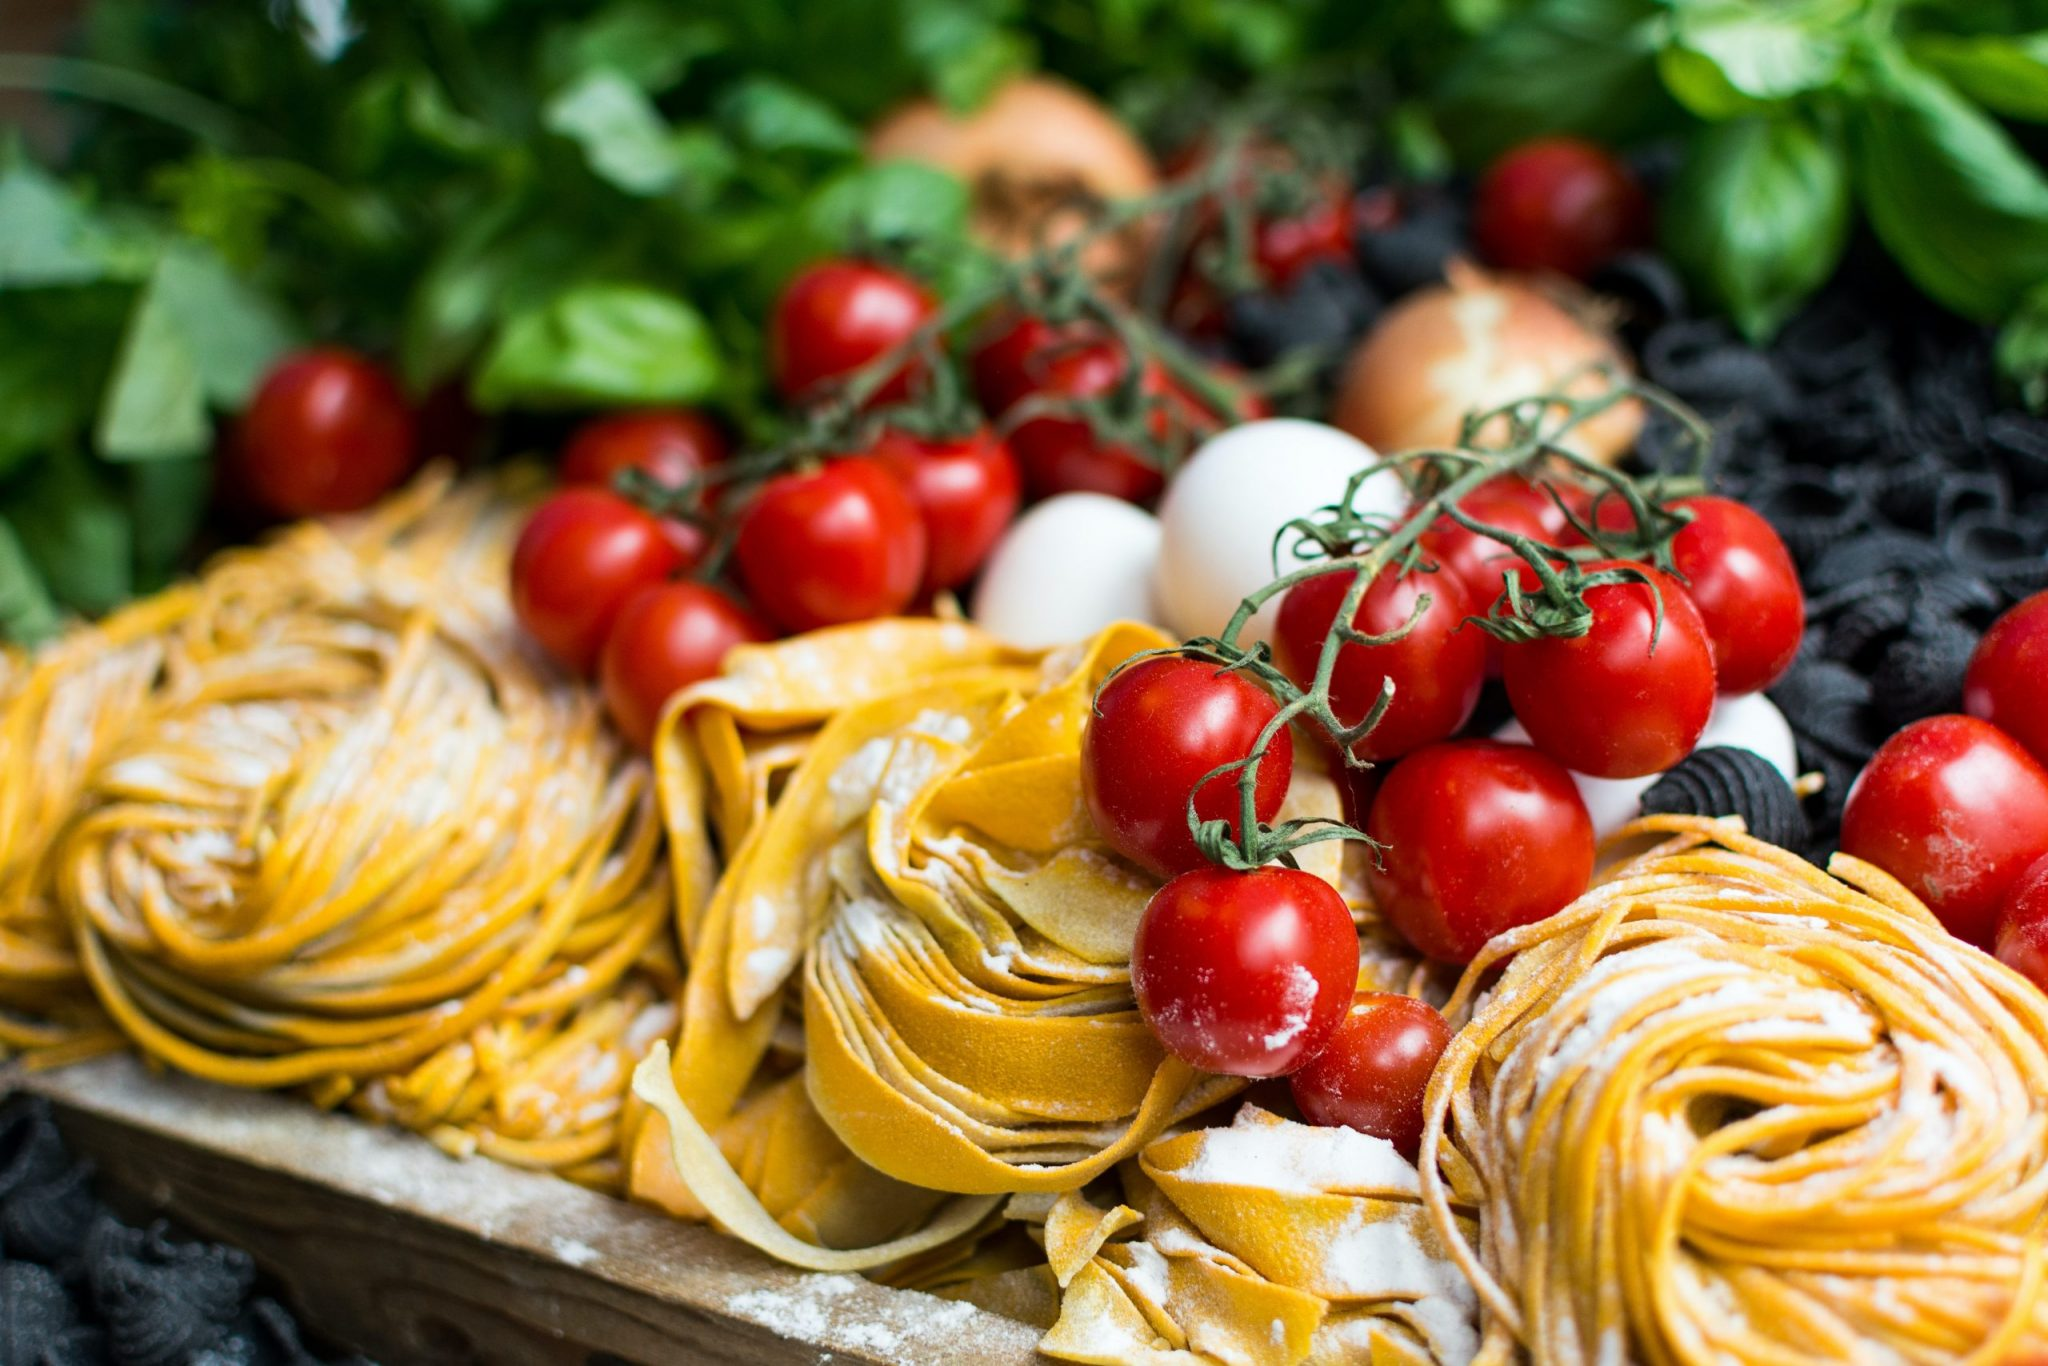 A photo of homemade pasta, mozzarella, and tomatoes